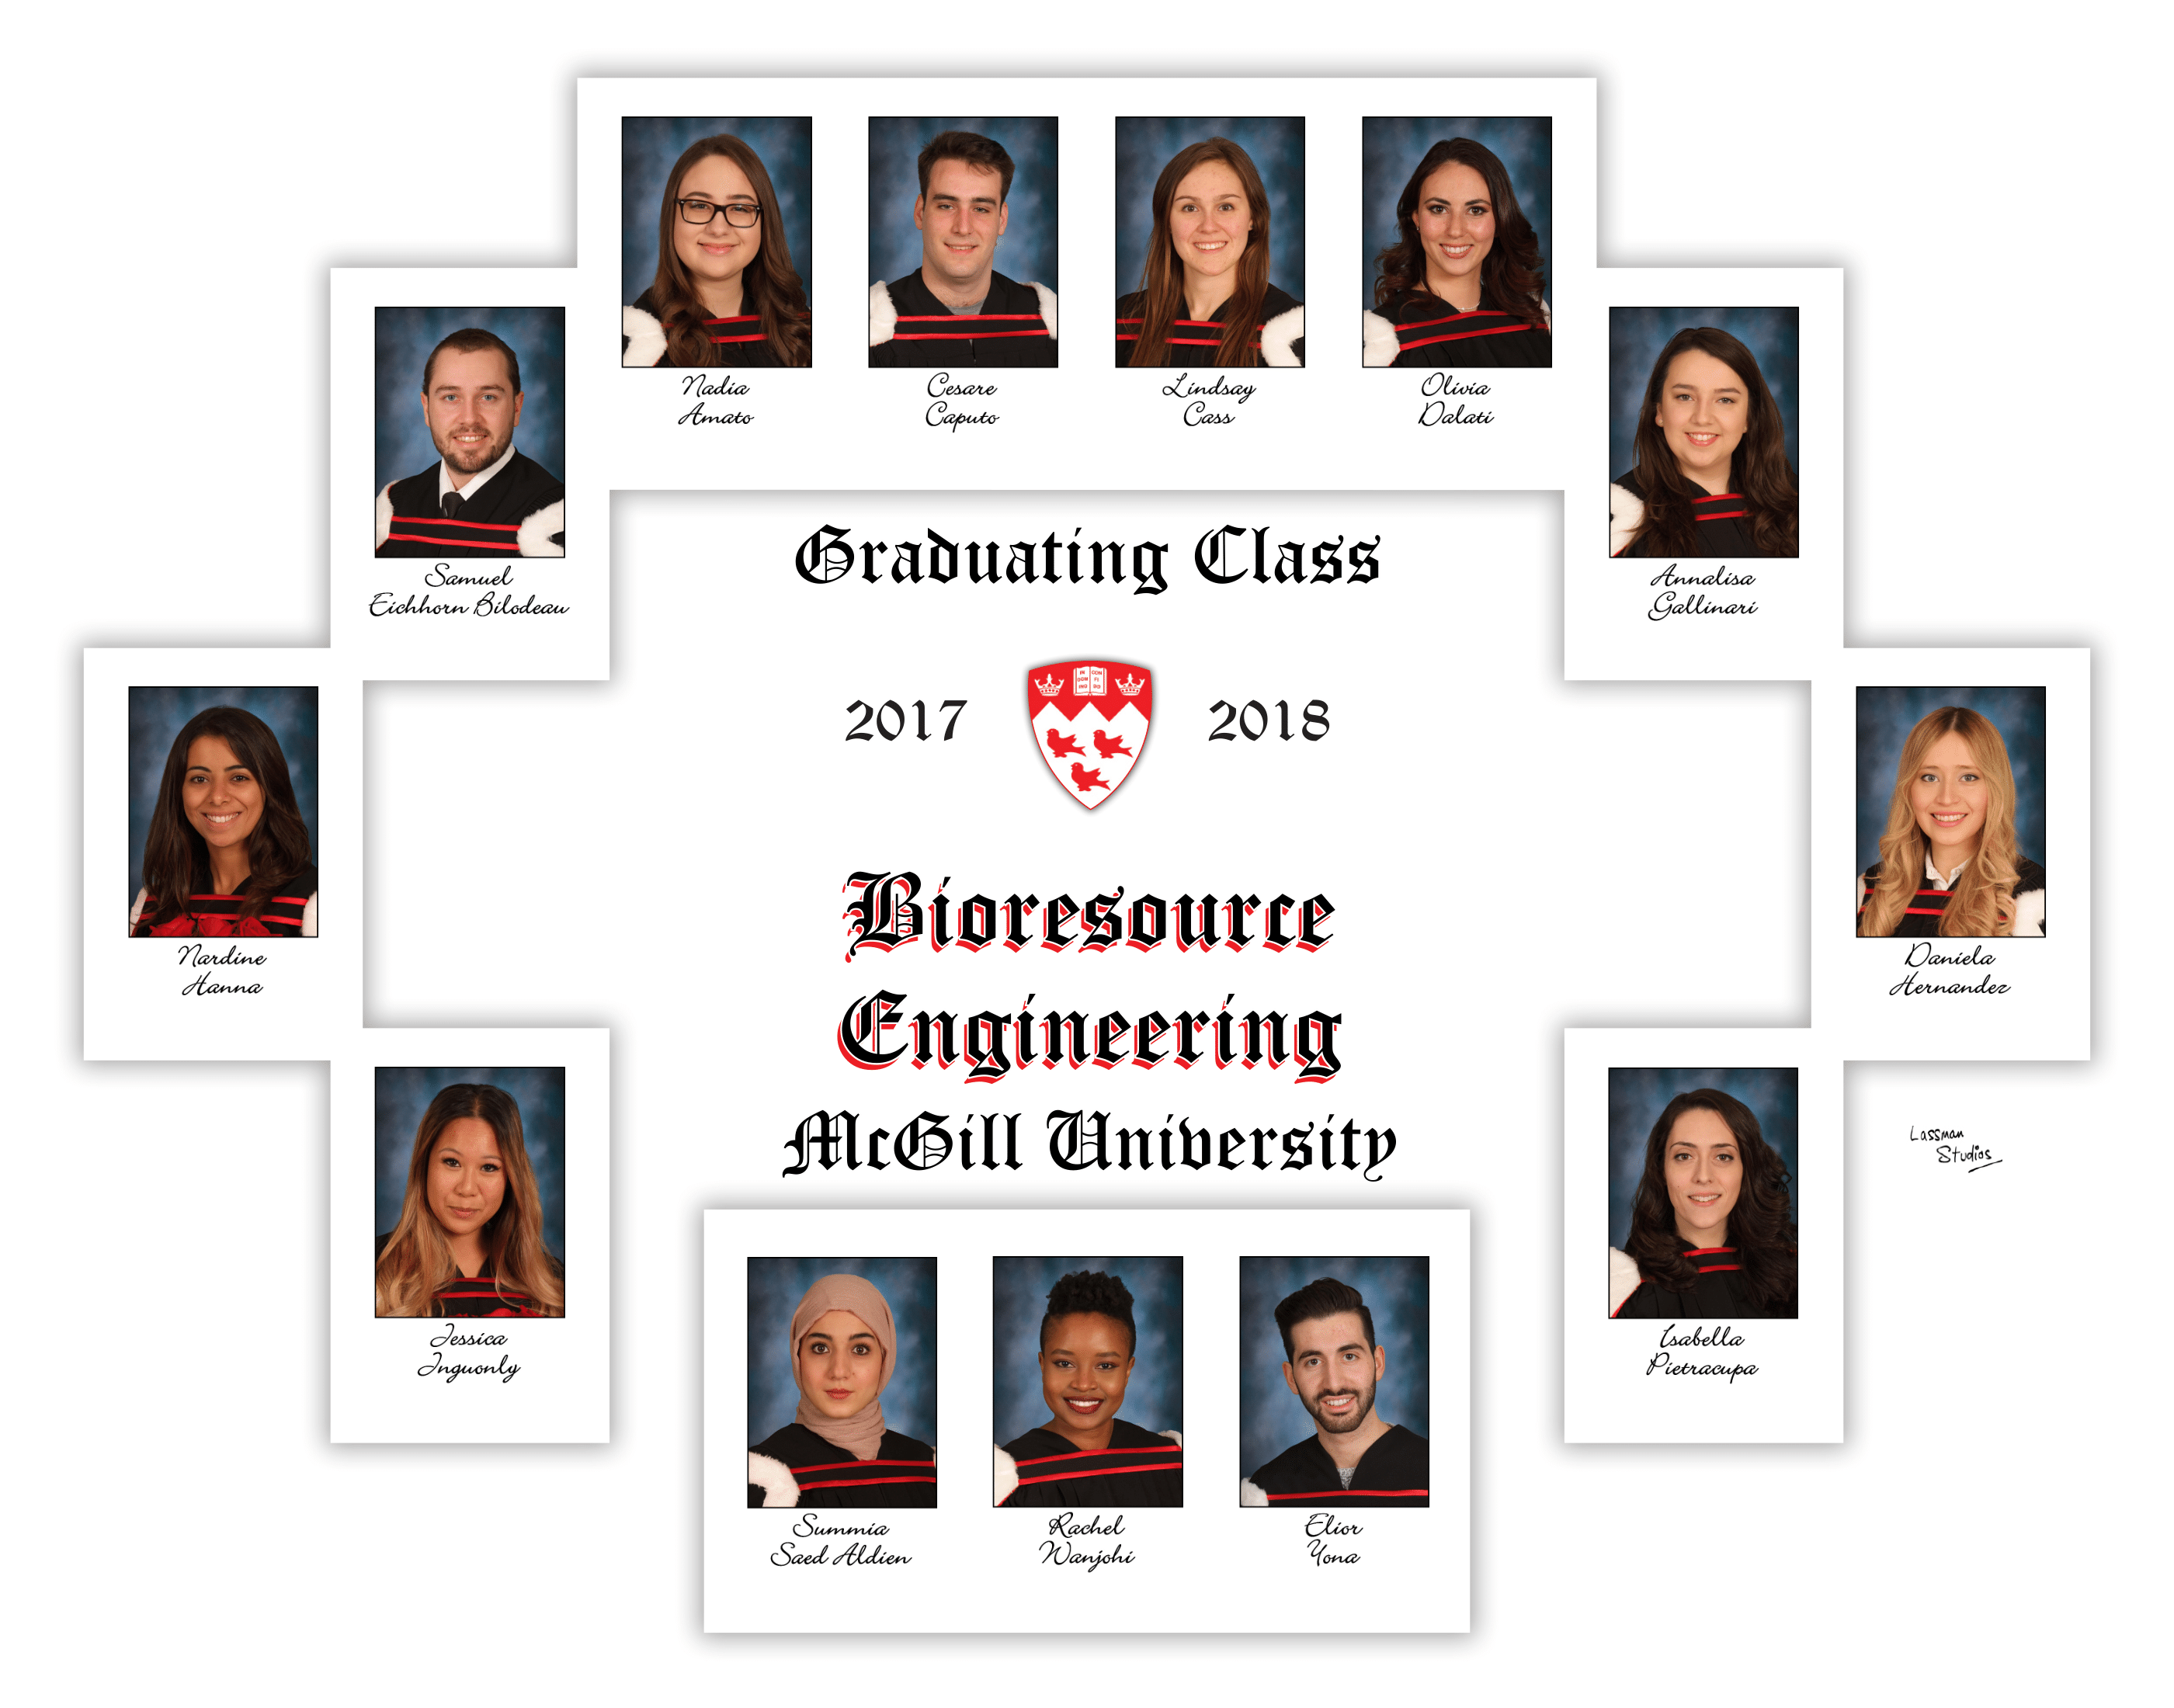 Bioresource Engineering